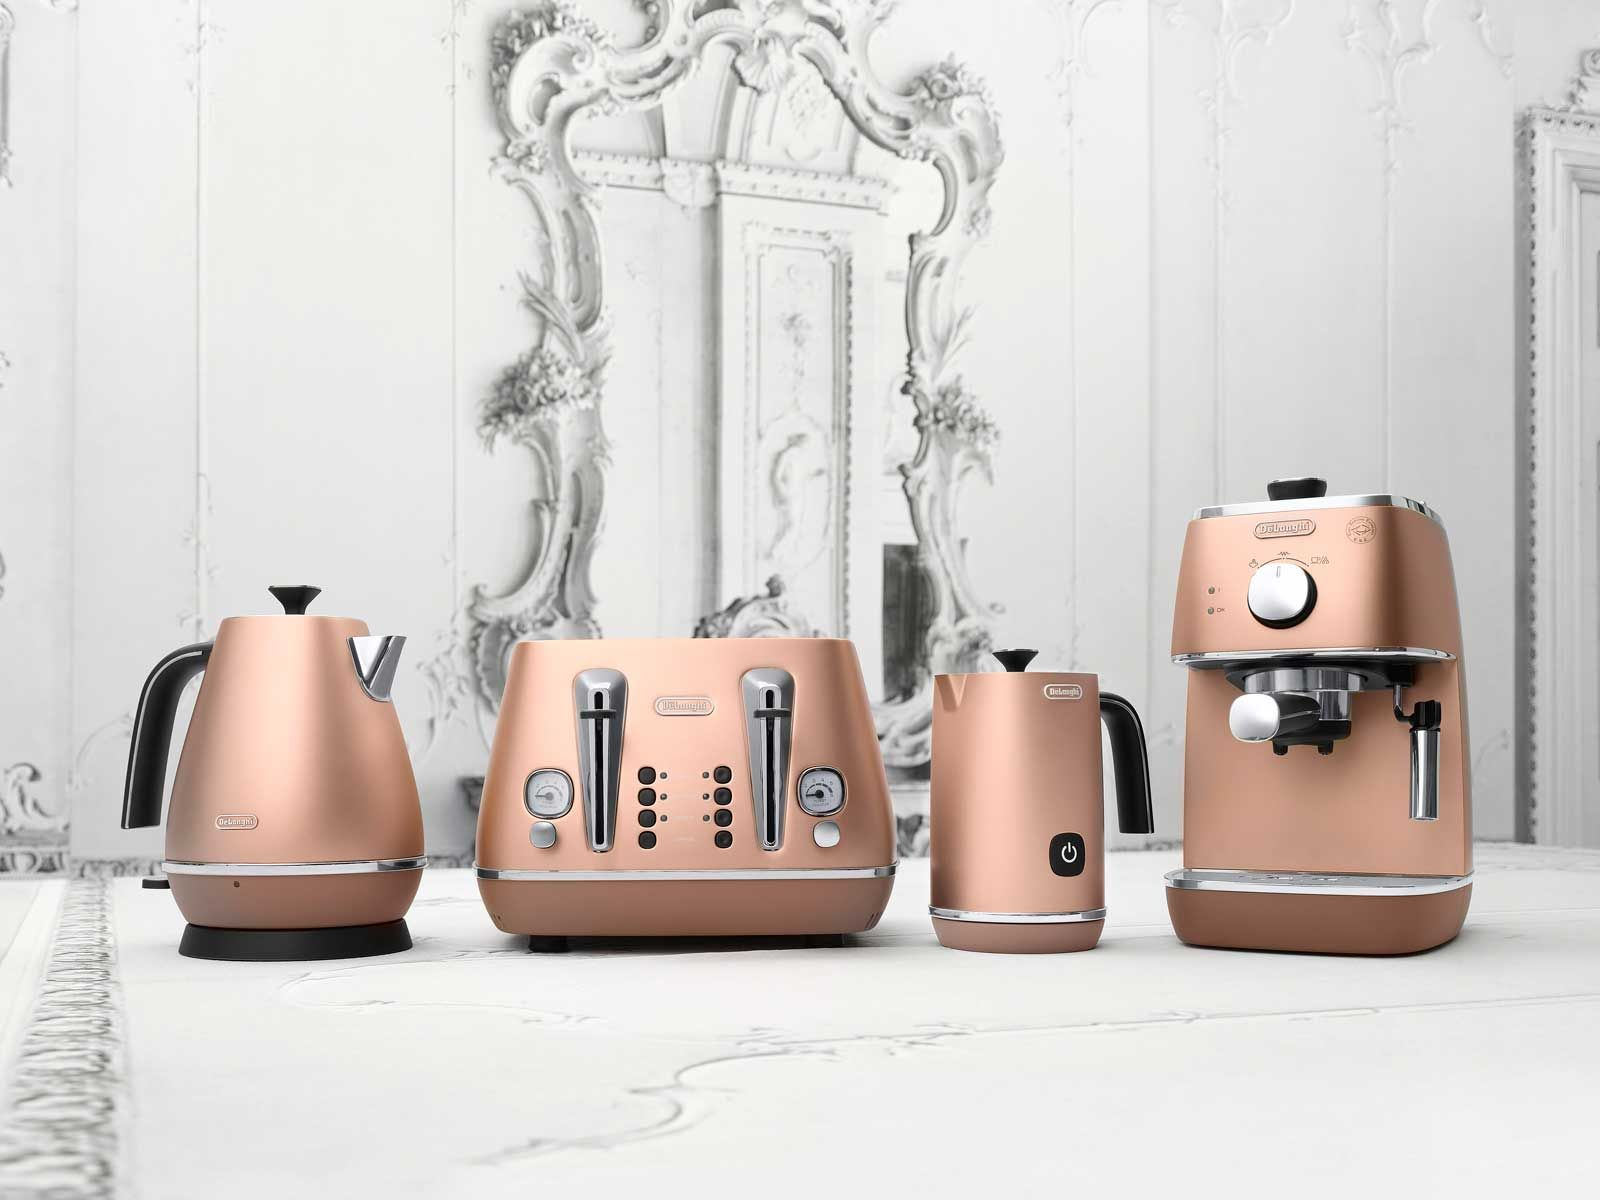 Delonghi Distinta Copper Kitchen Appliances Are Amazing Copper Kitchen Appliances Rose Gold Kitchen Copper Kitchen